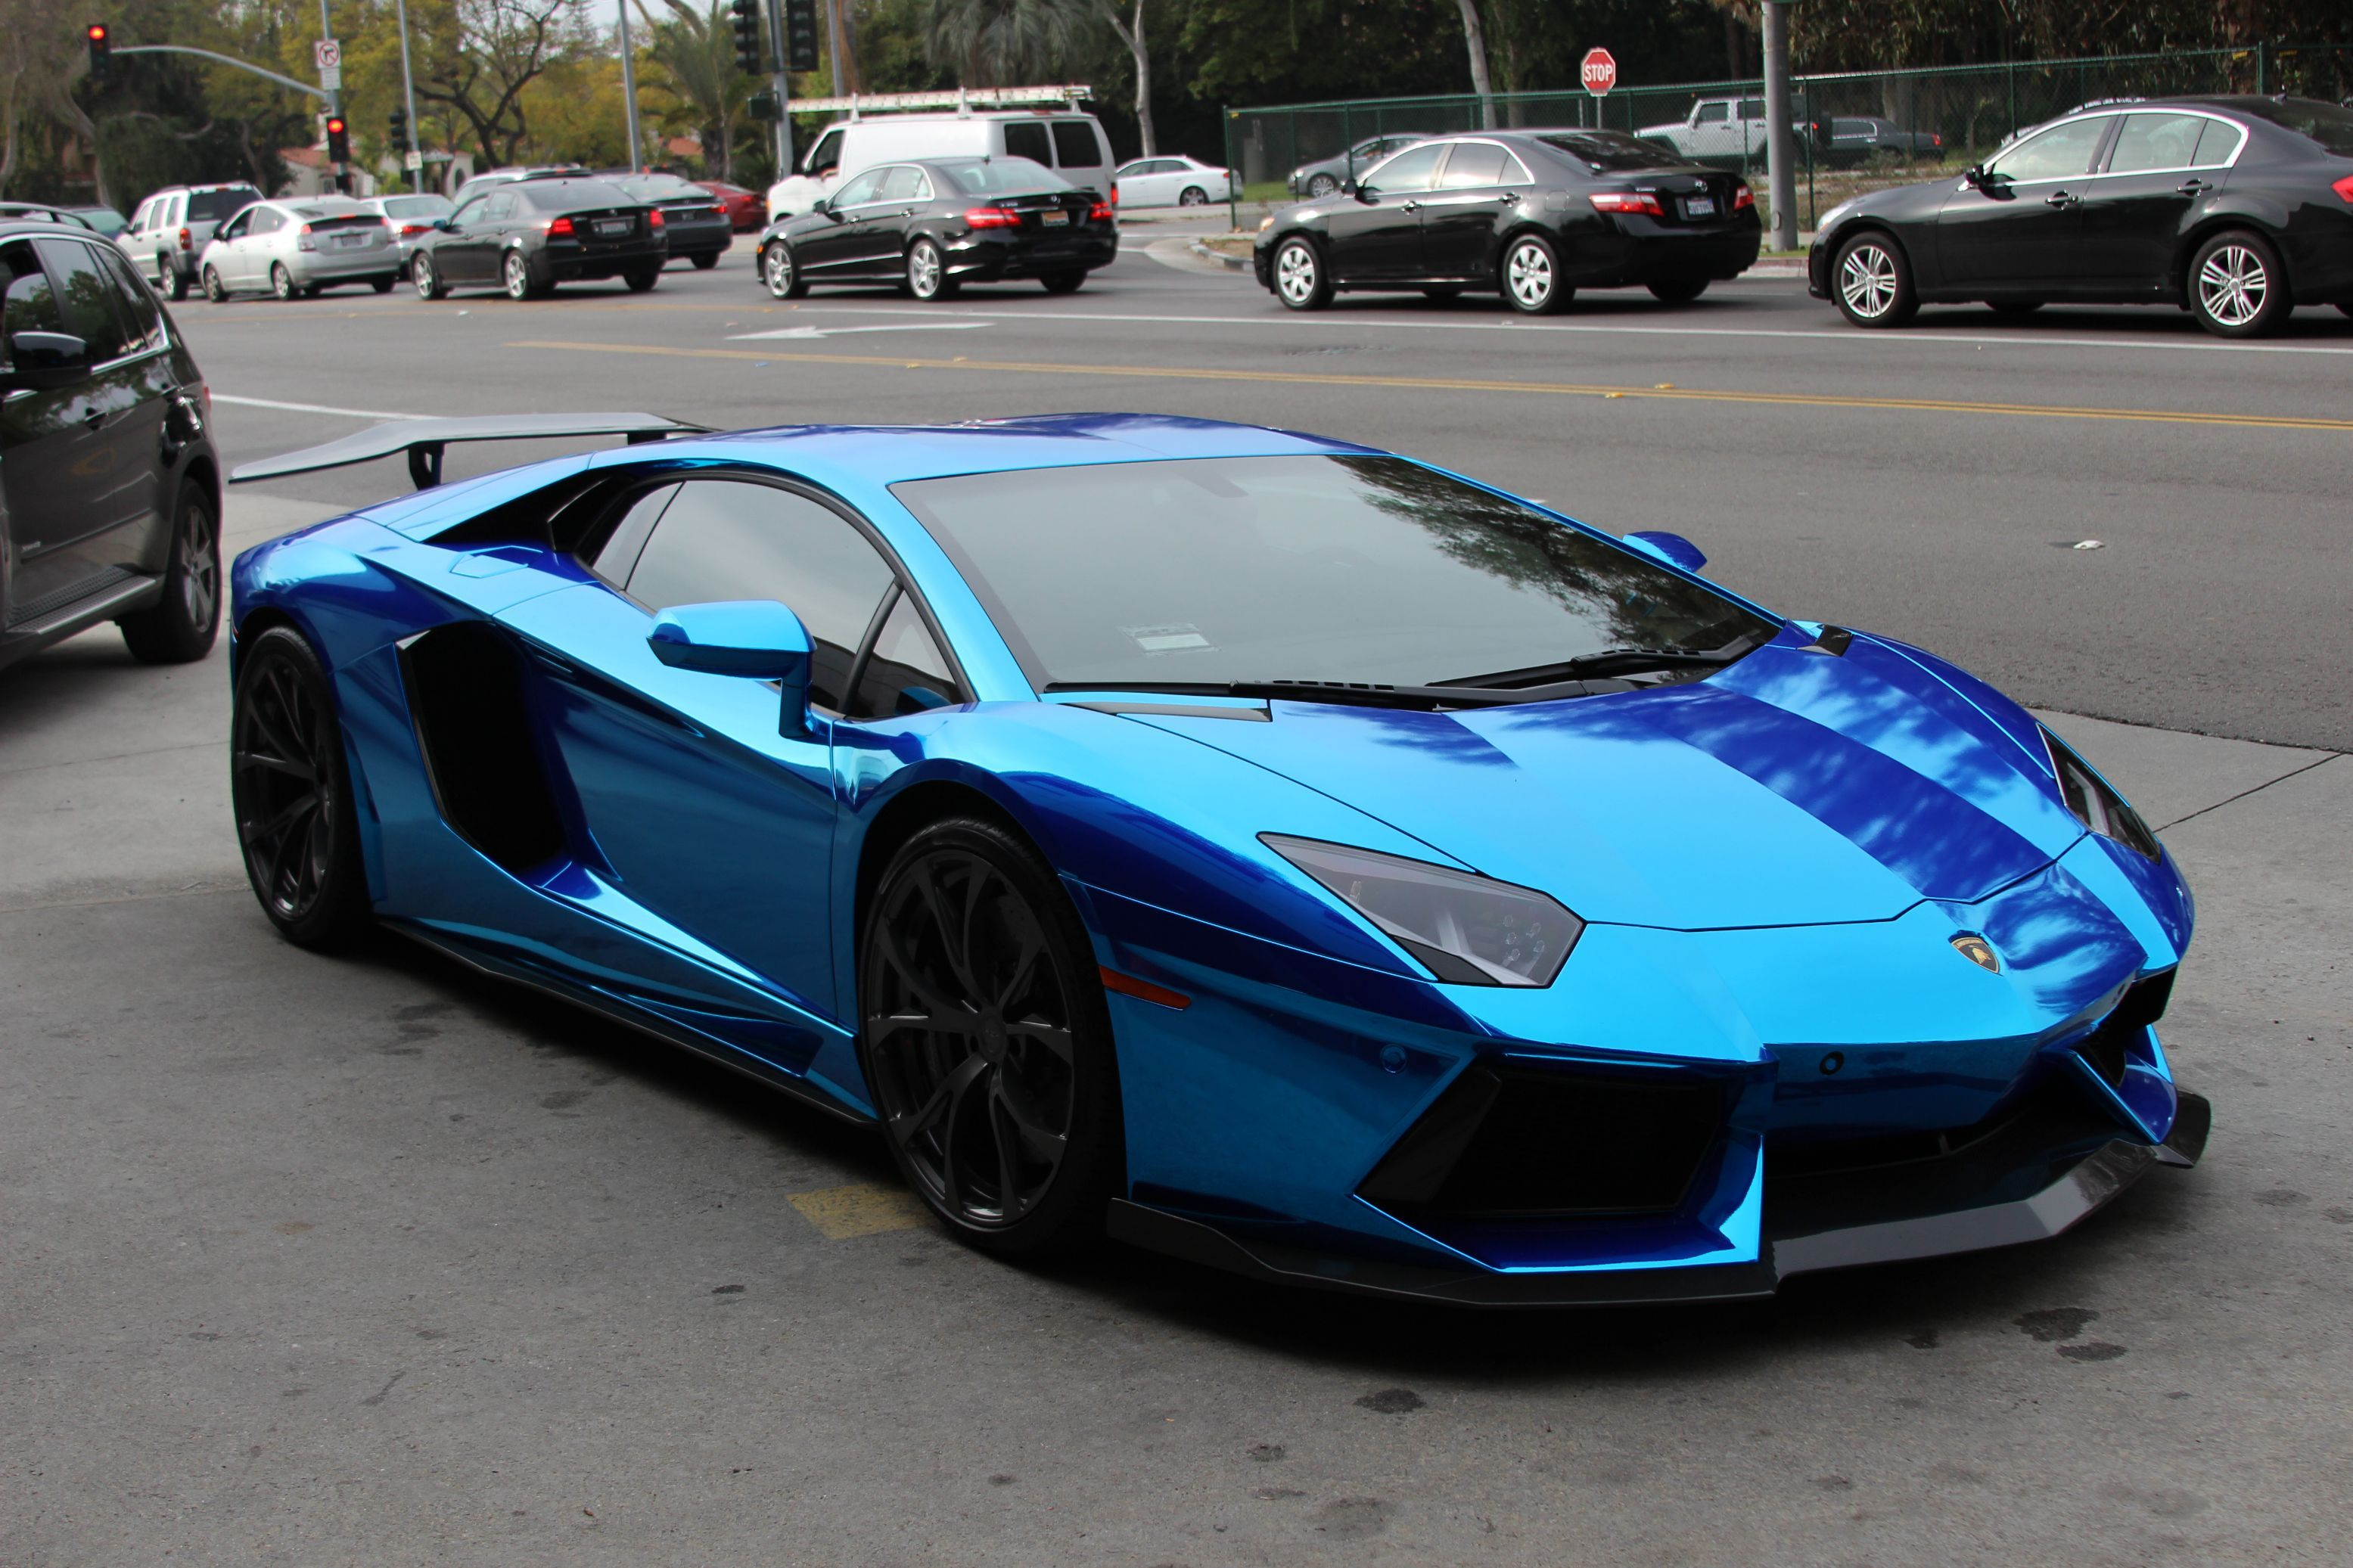 2015 lamborghini aventador wallpaper widescreen #90572 | mah sweet